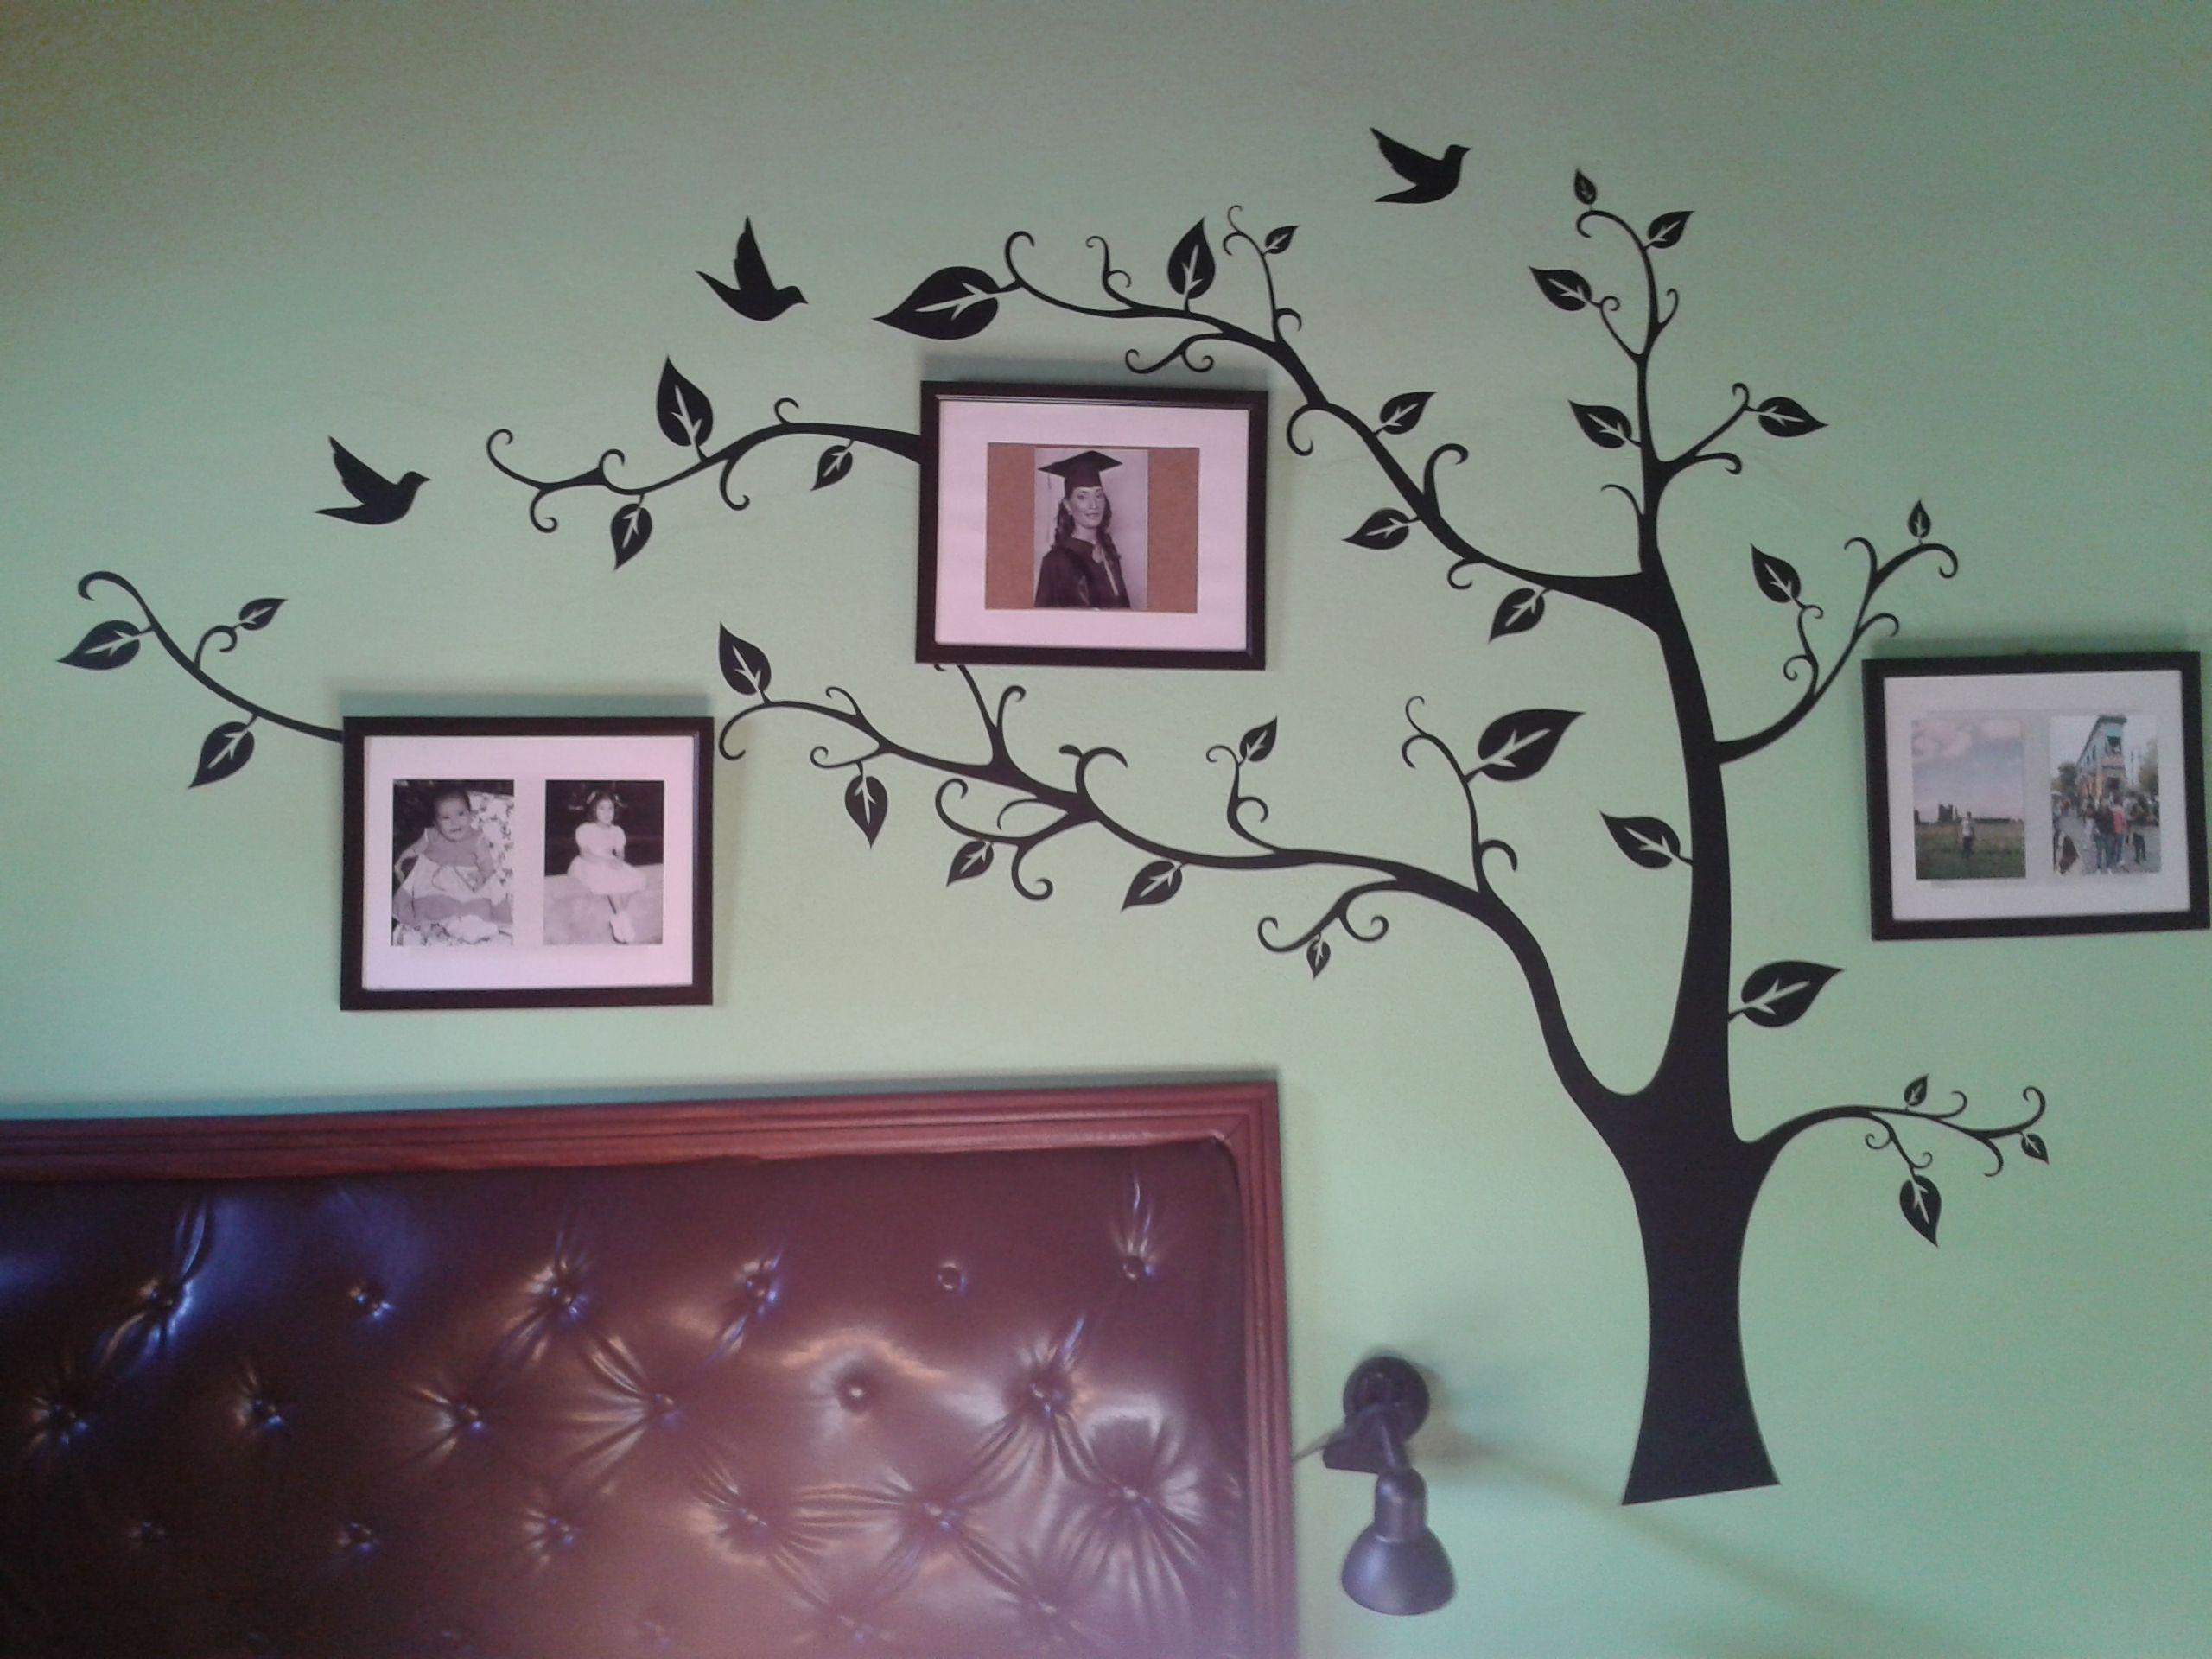 Walldecal walldecor tree decoracion en pared con fotos - Decoracion de paredes con fotos ...